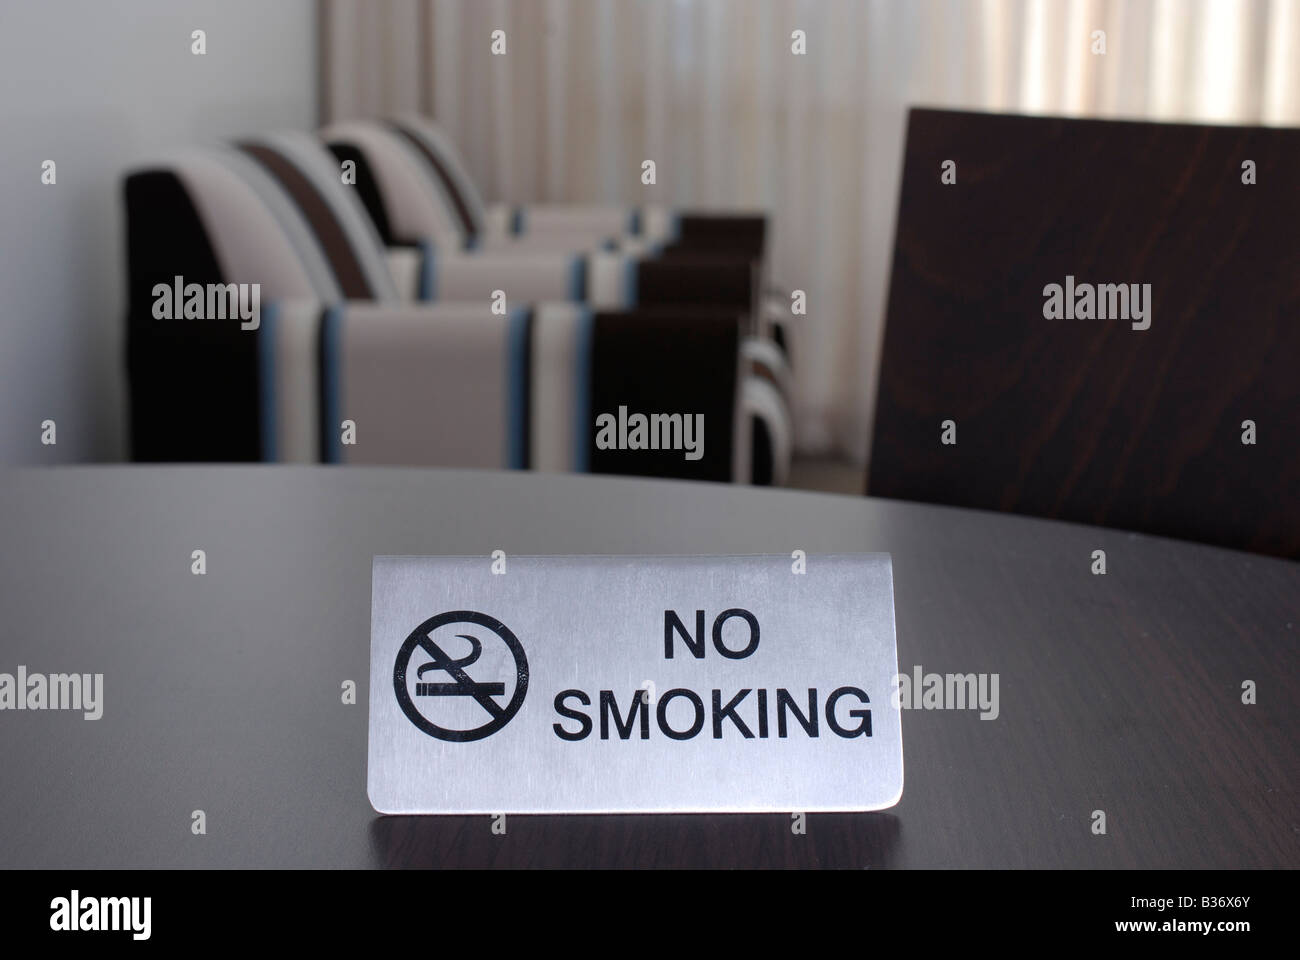 Hotel Smoking Rooms Law